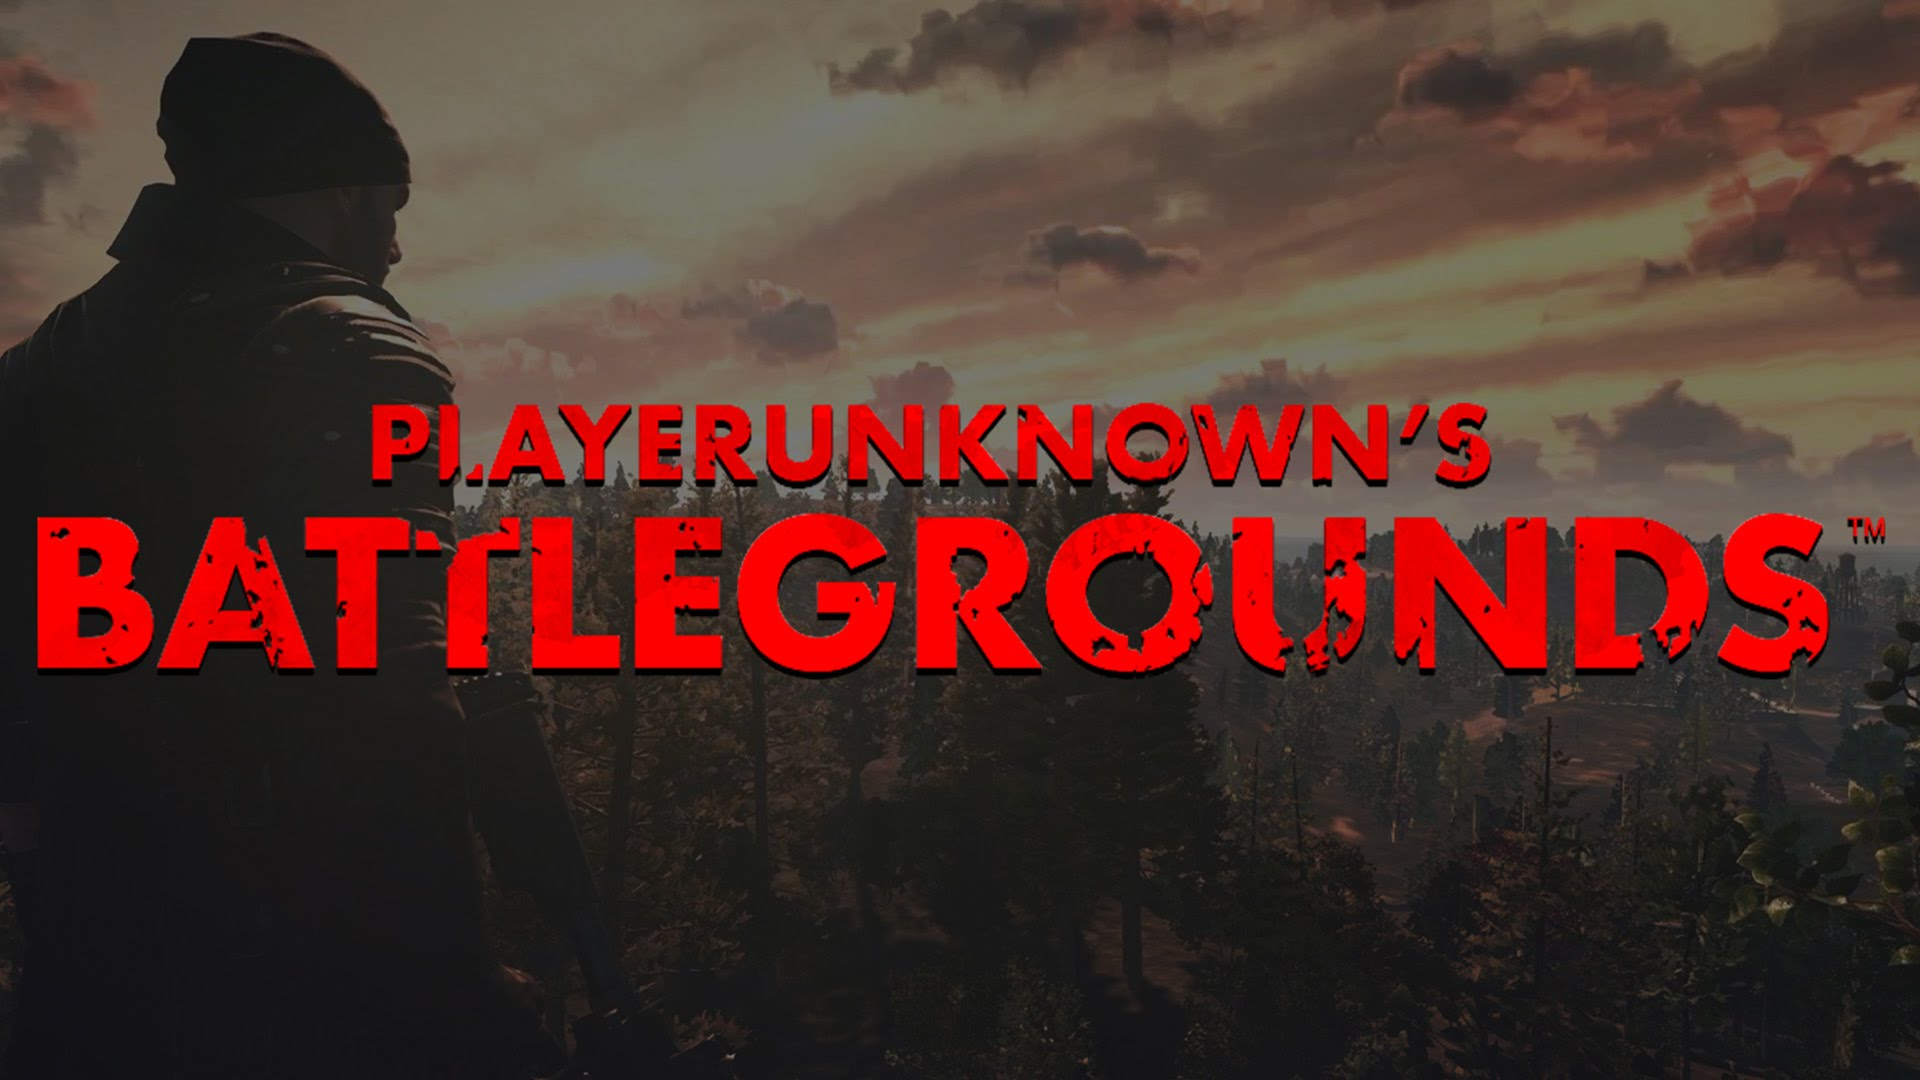 Playerunknown S Battlegrounds Wallpapers: PLAYERUNKNOWN'S BATTLEGROUNDS Wallpapers, Pictures, Images